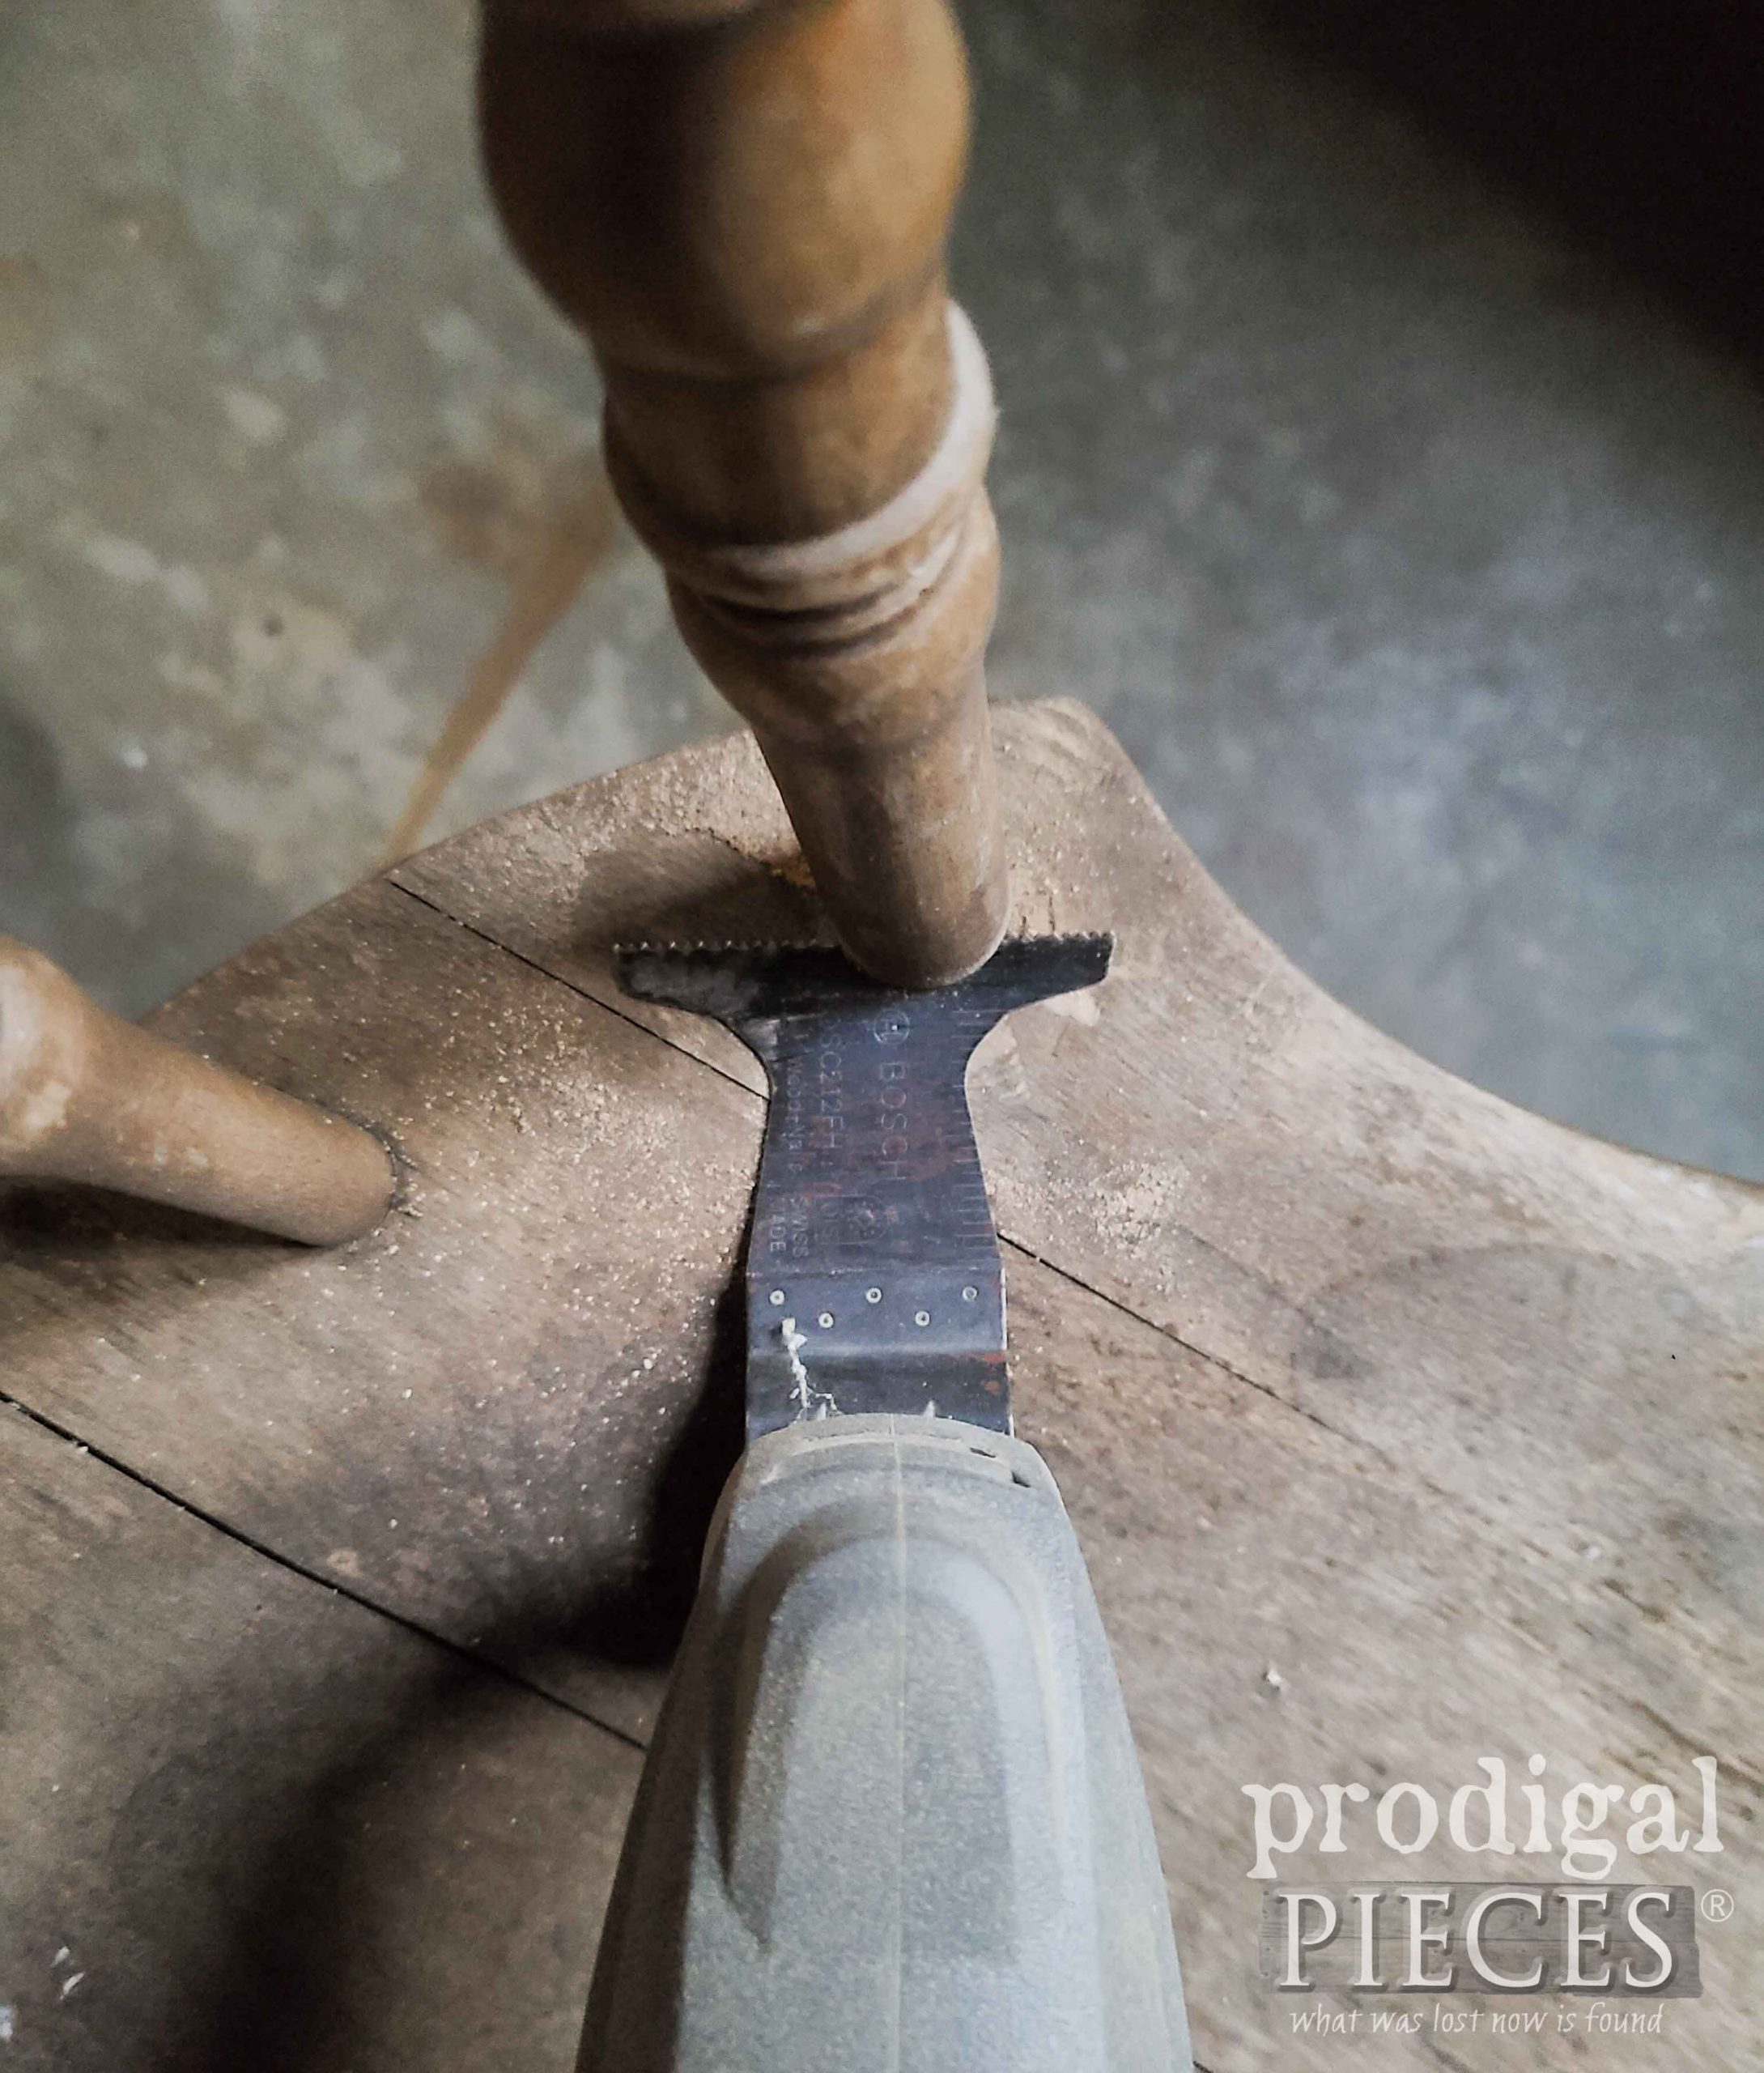 Cutting Chair Back Spindles | prodigalpieces.com